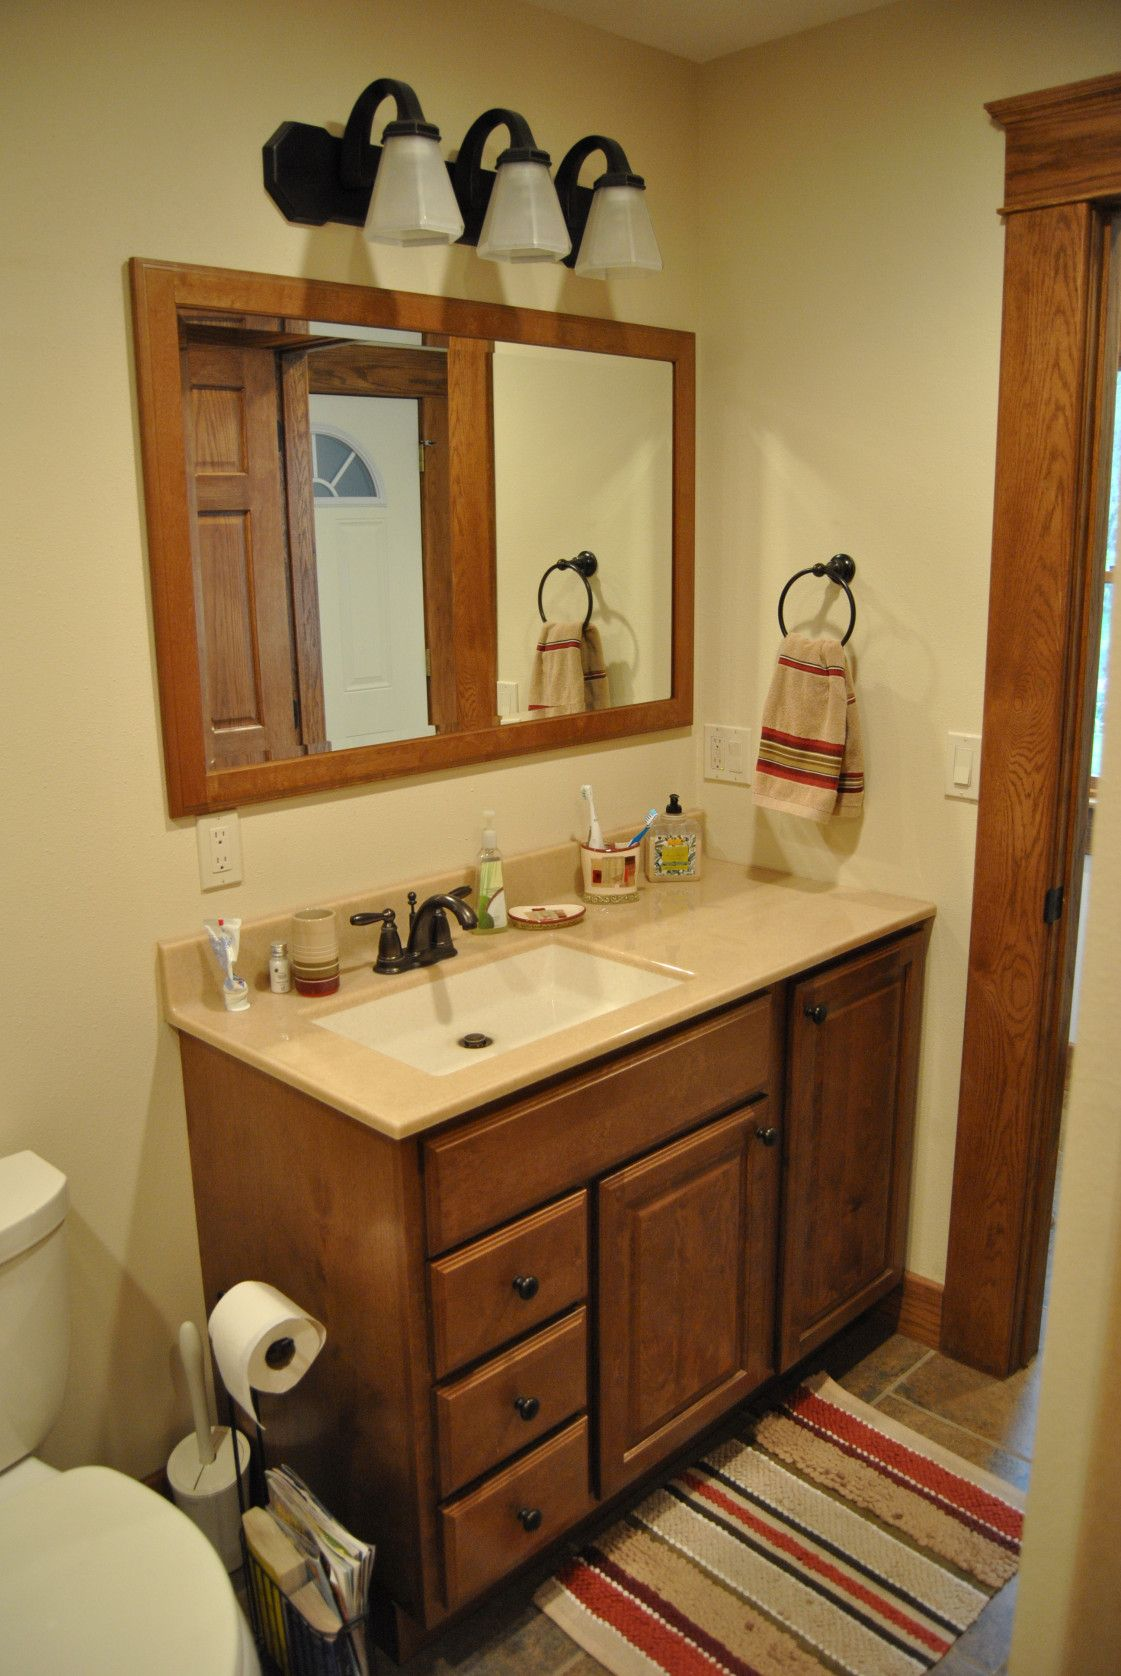 50 Birch Bathroom Vanity Cabinets Kitchen Cabinet Lighting Ideas Check More At Http Www Planetgreenspot 99